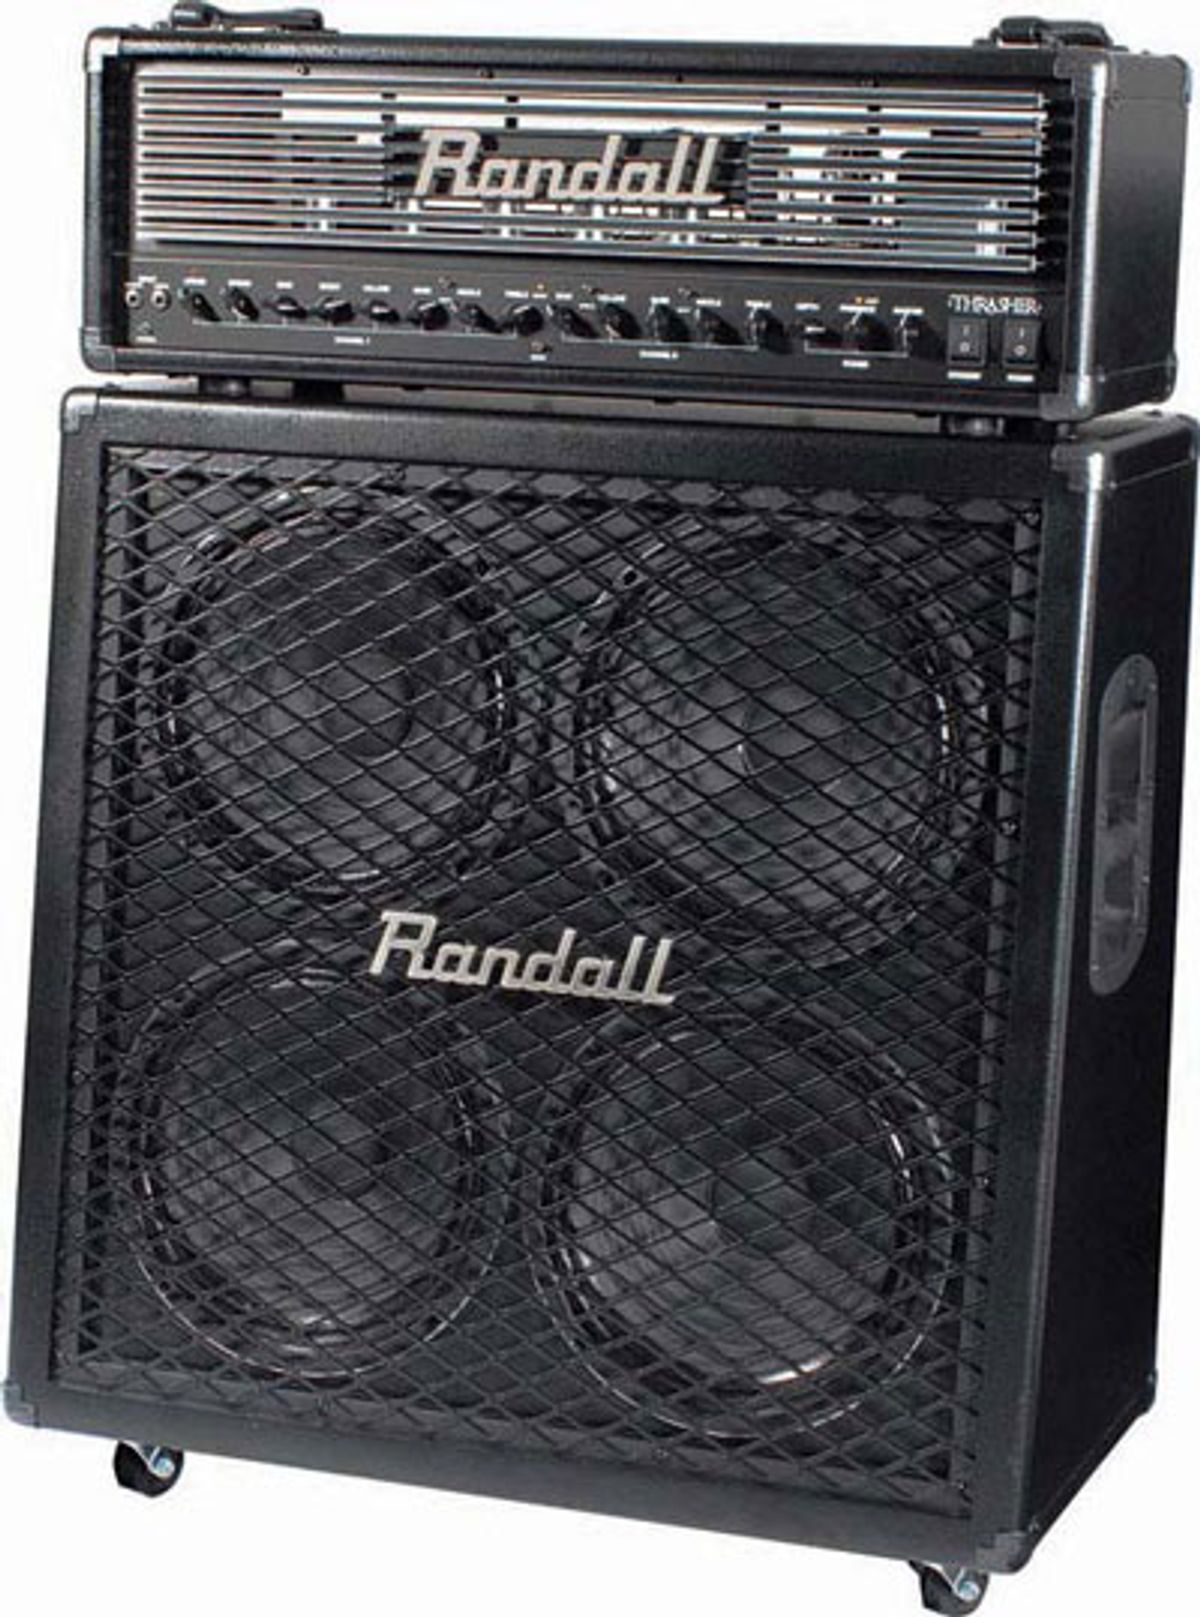 Randall Introduces the Thrasher Series Amps